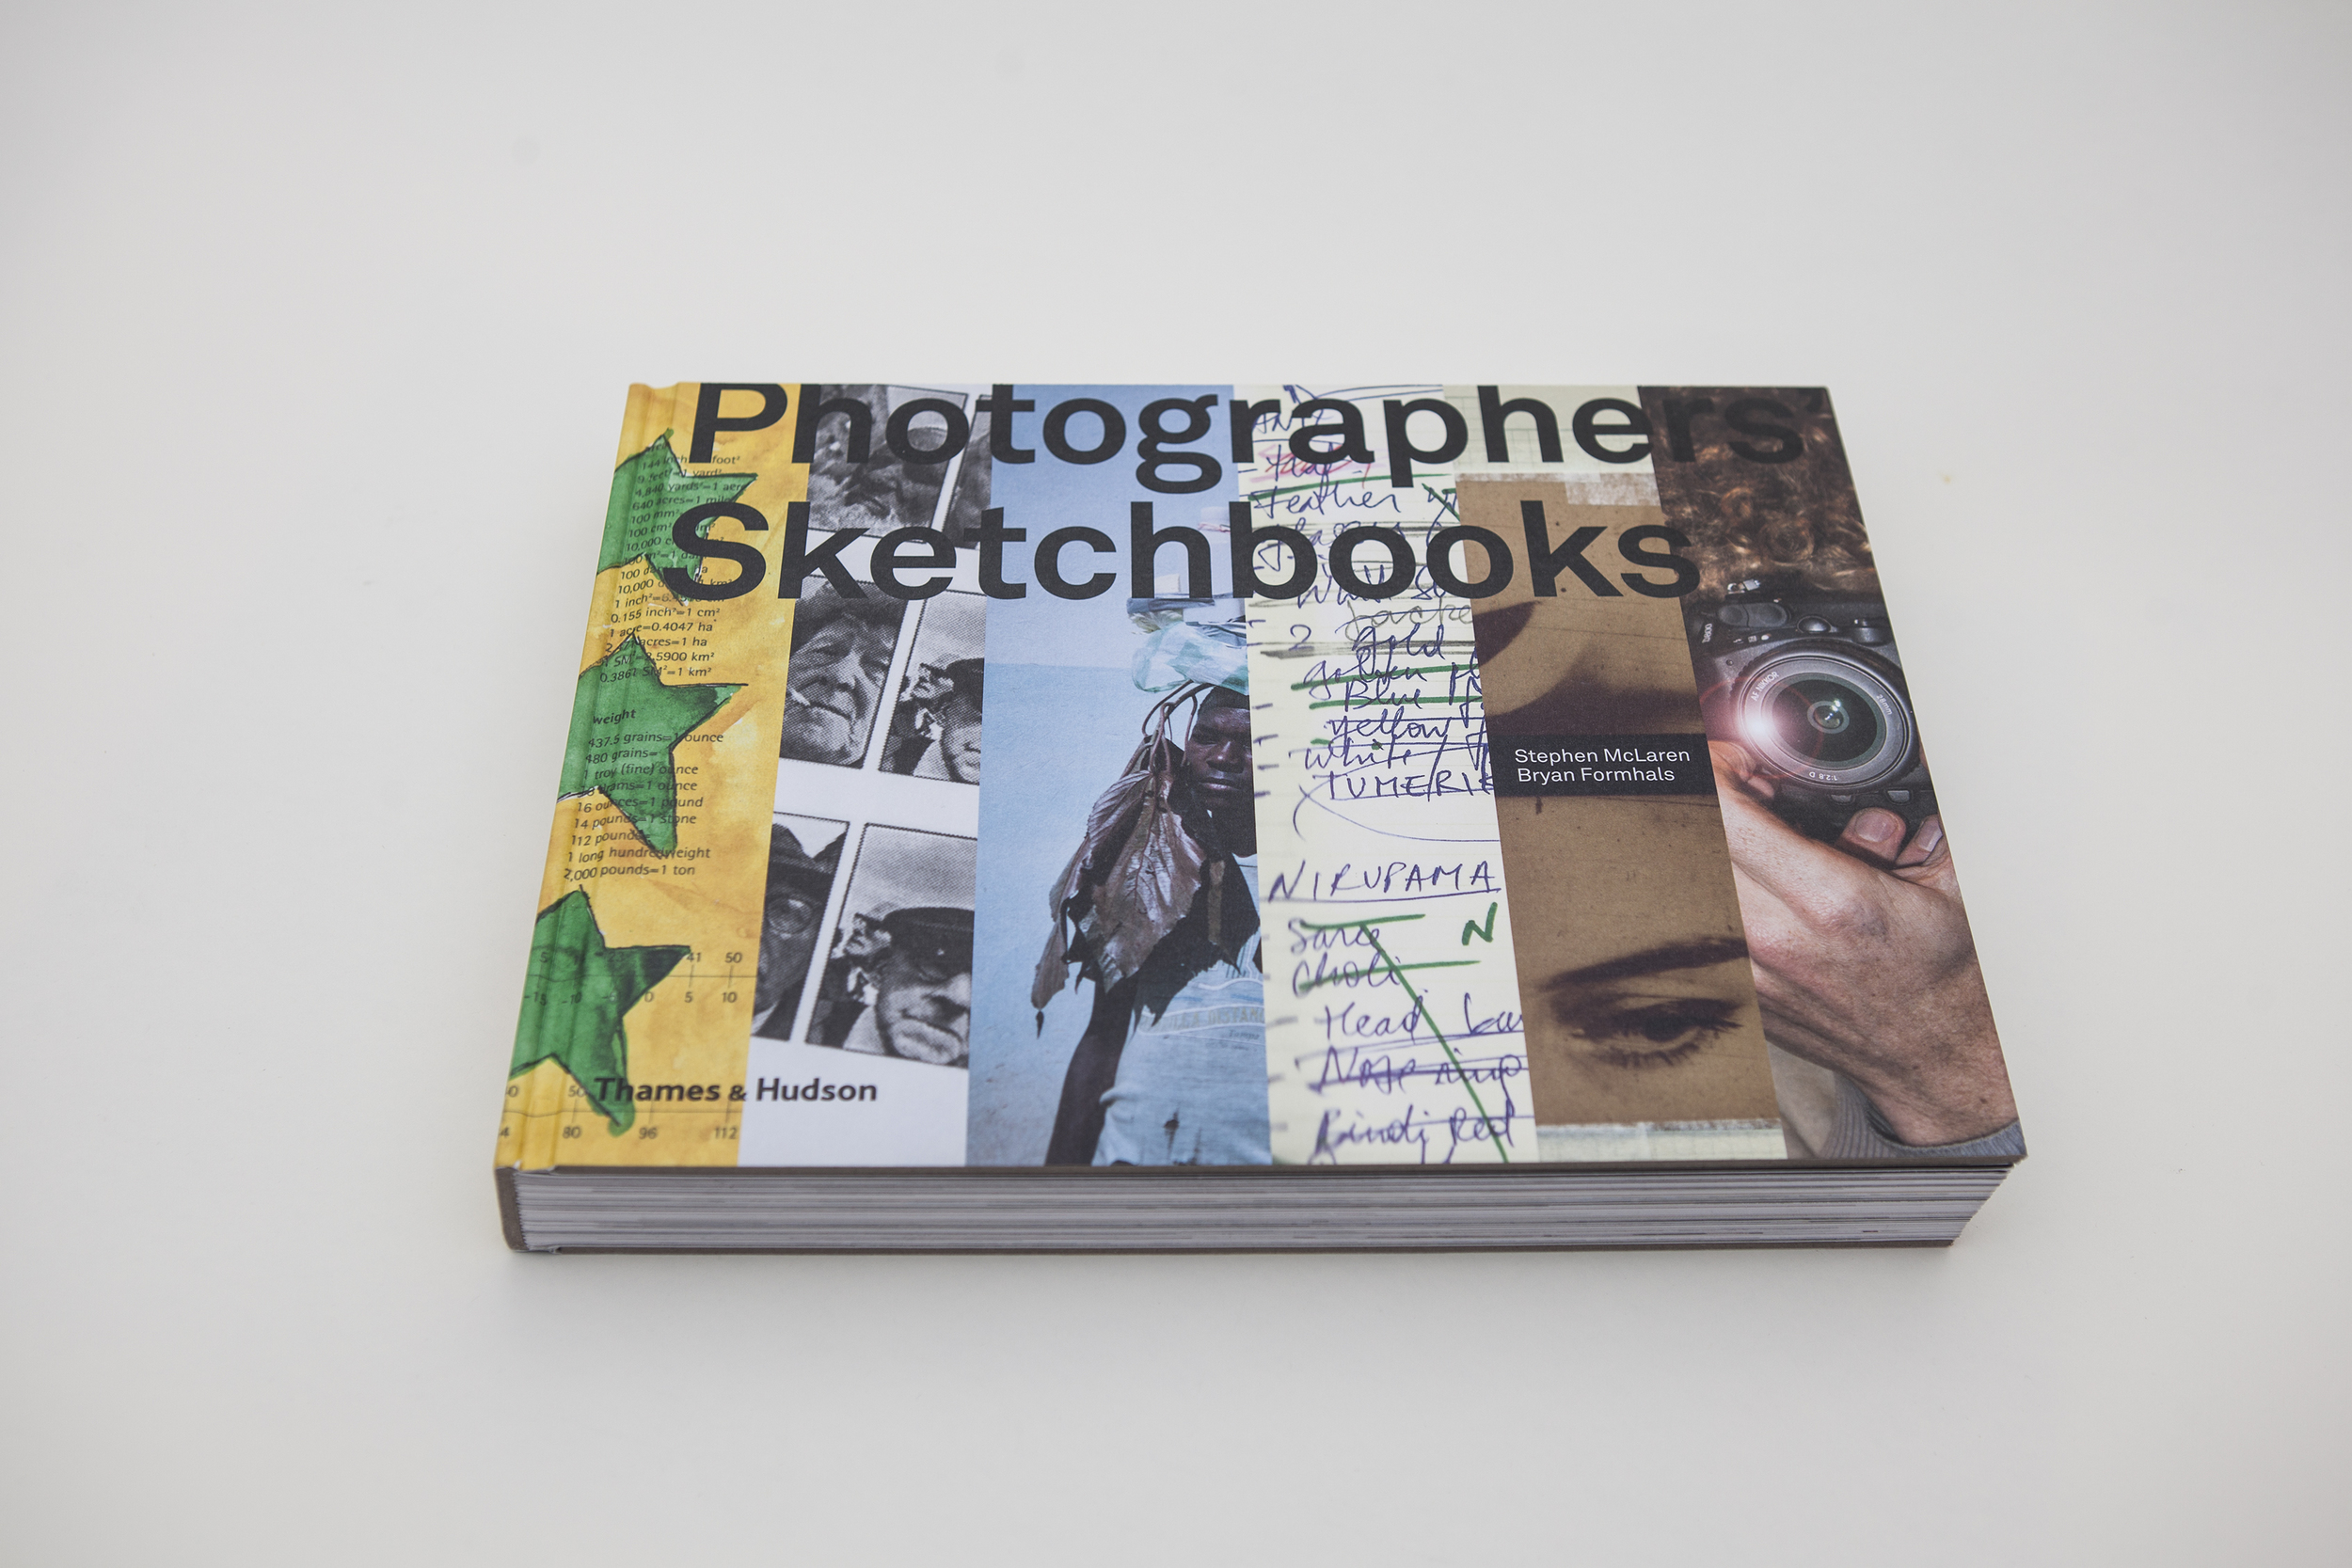 Photographers' Sketchbooks   by Stephen McLaren & Bryan Formhals Thames & Hudson, 320 pp., $60